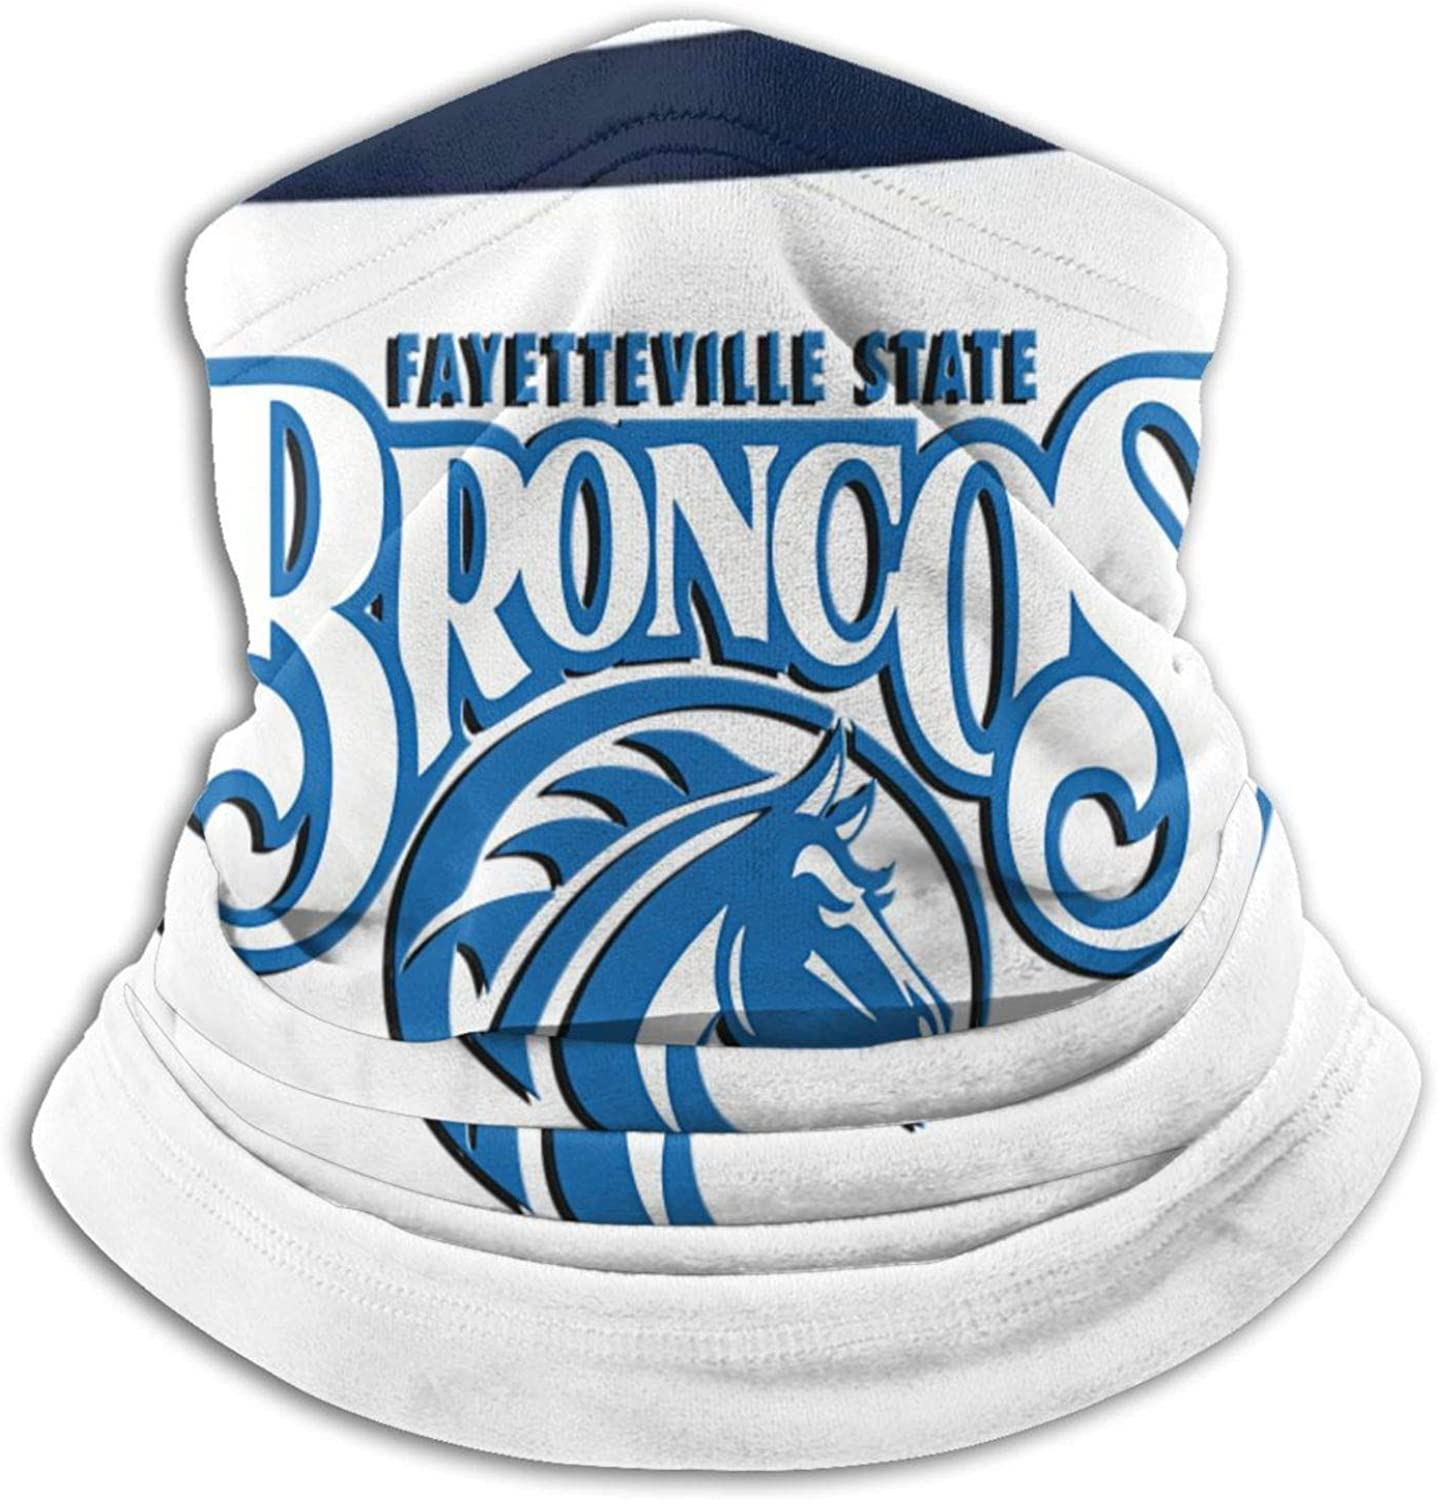 Fayetteville A State University Logo Unisex Comfort Microfiber Neck Gaiter Variety Scarf Face Motorcycle Cycling Riding Running Headbands.